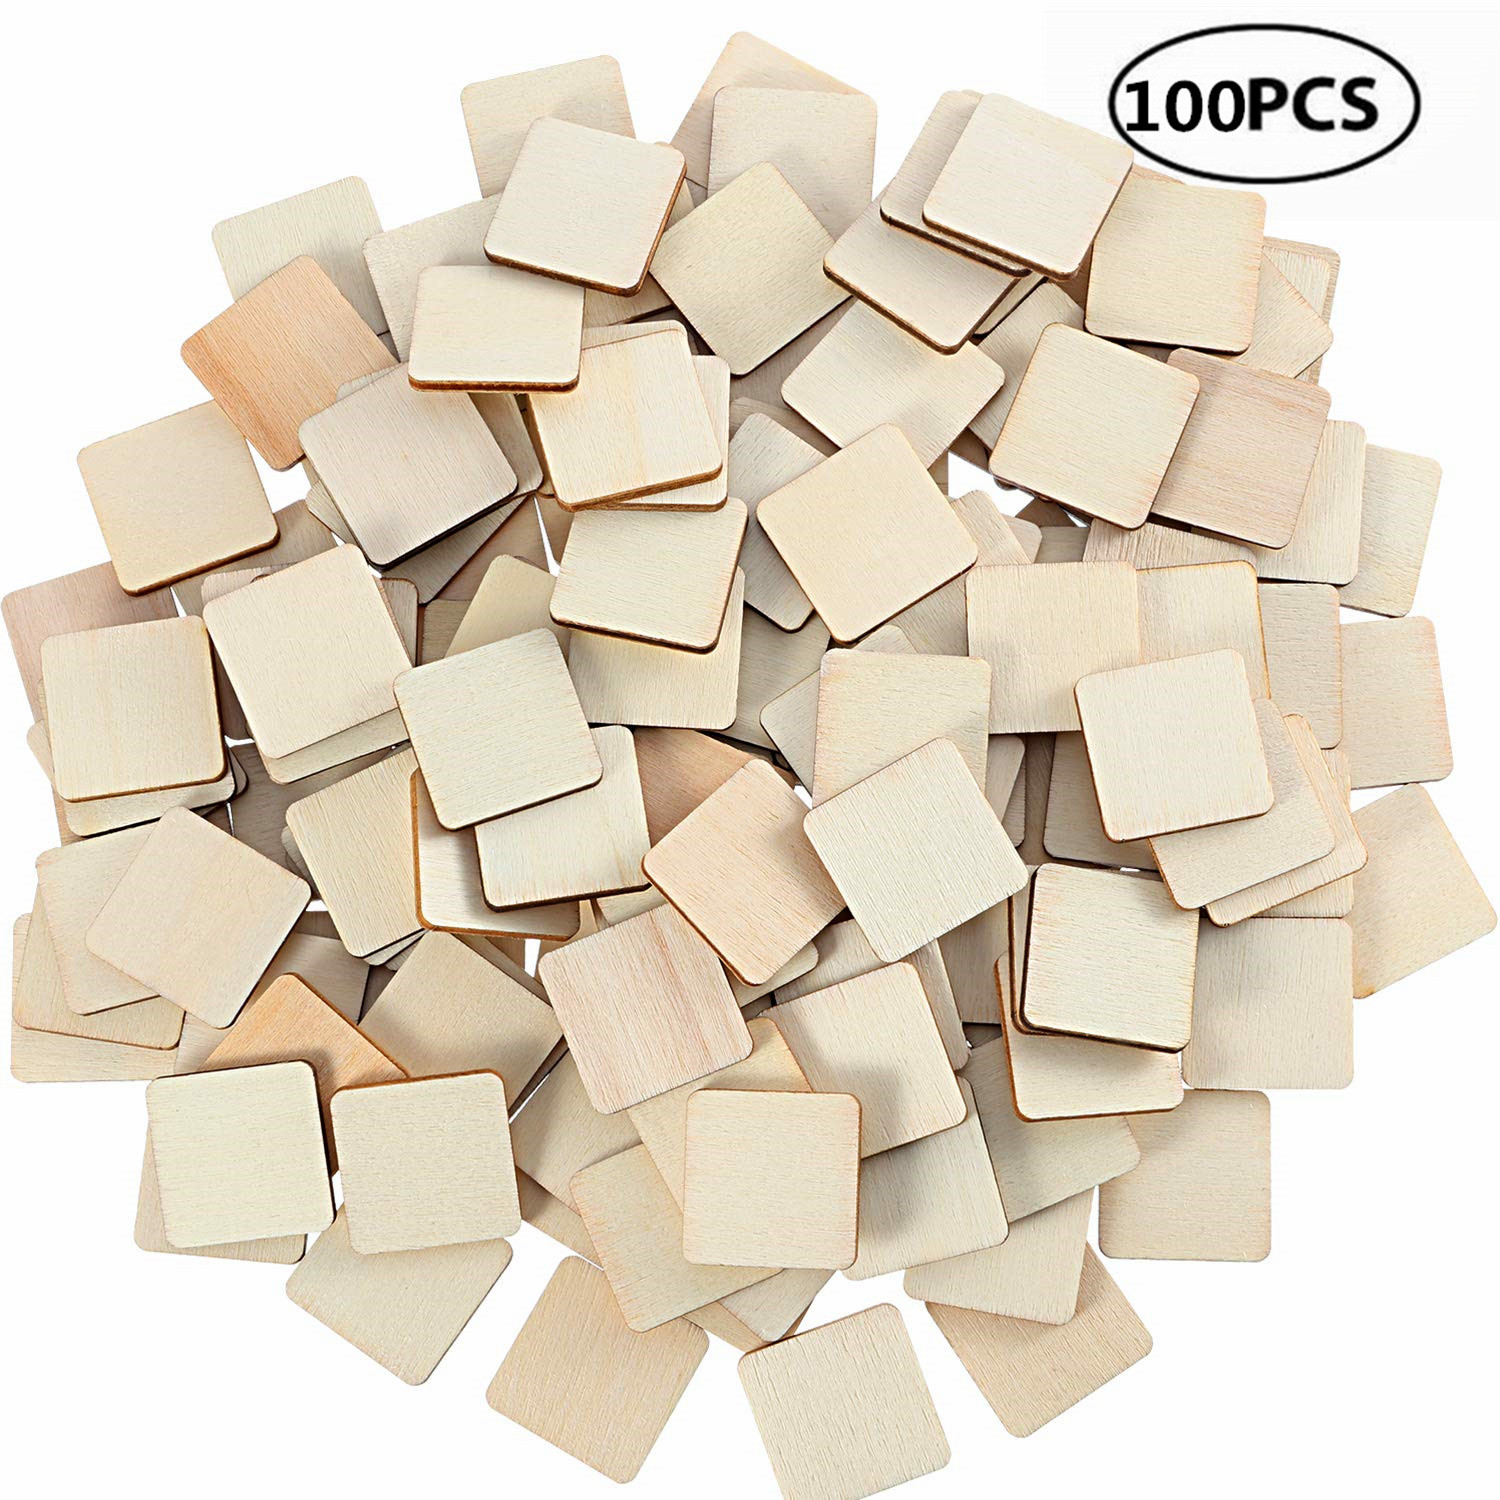 100pcs Natural Unfinished Wooden Bead for DIY Jewelry Making Findings 10mm